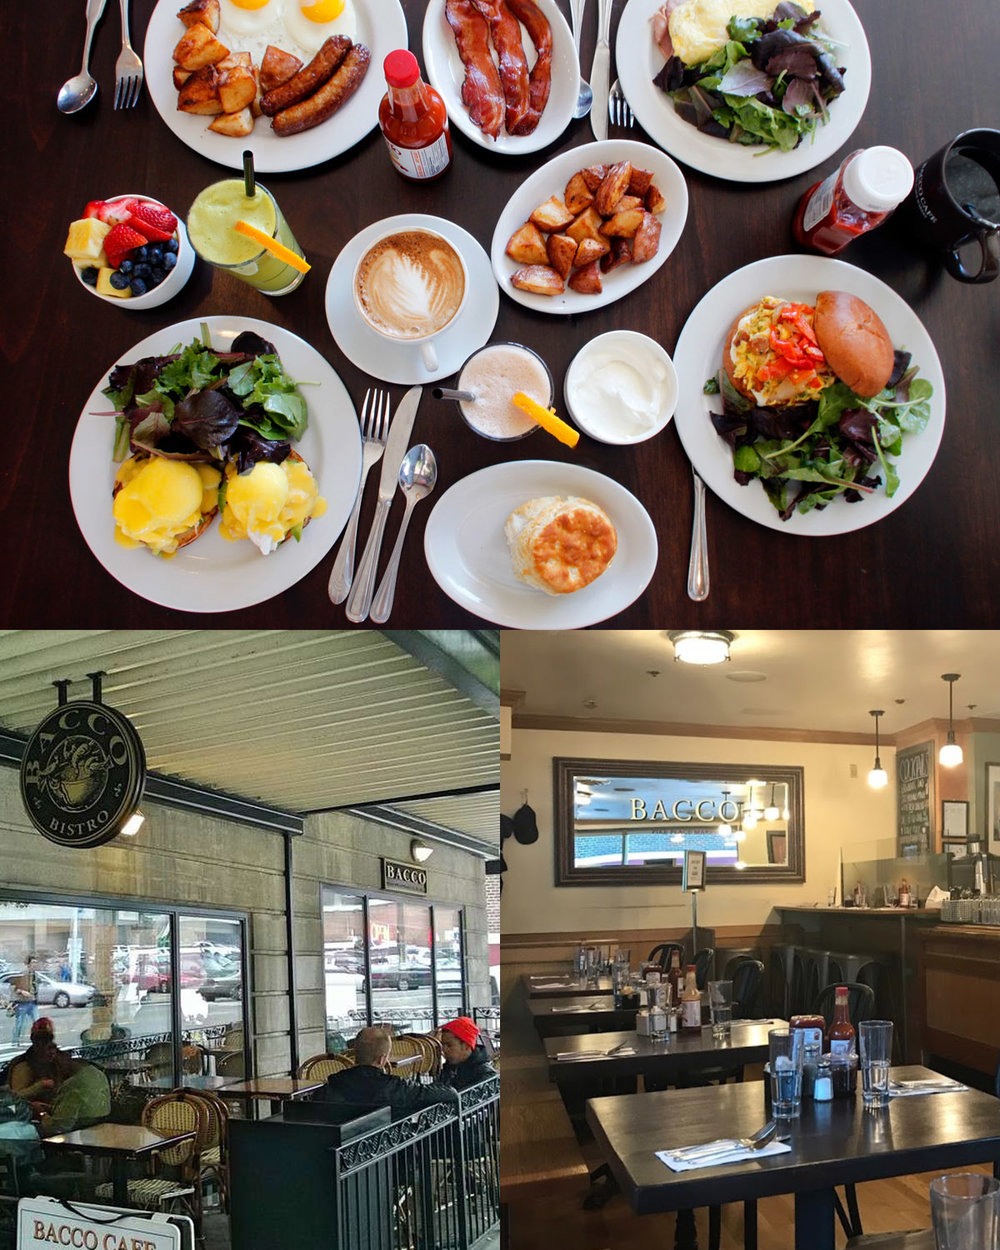 Bocca Cafe - Bacco fuses a mixture of pacific northwest cuisine with modern fare, refreshing the palettes of it's customers in an invigorating nature.